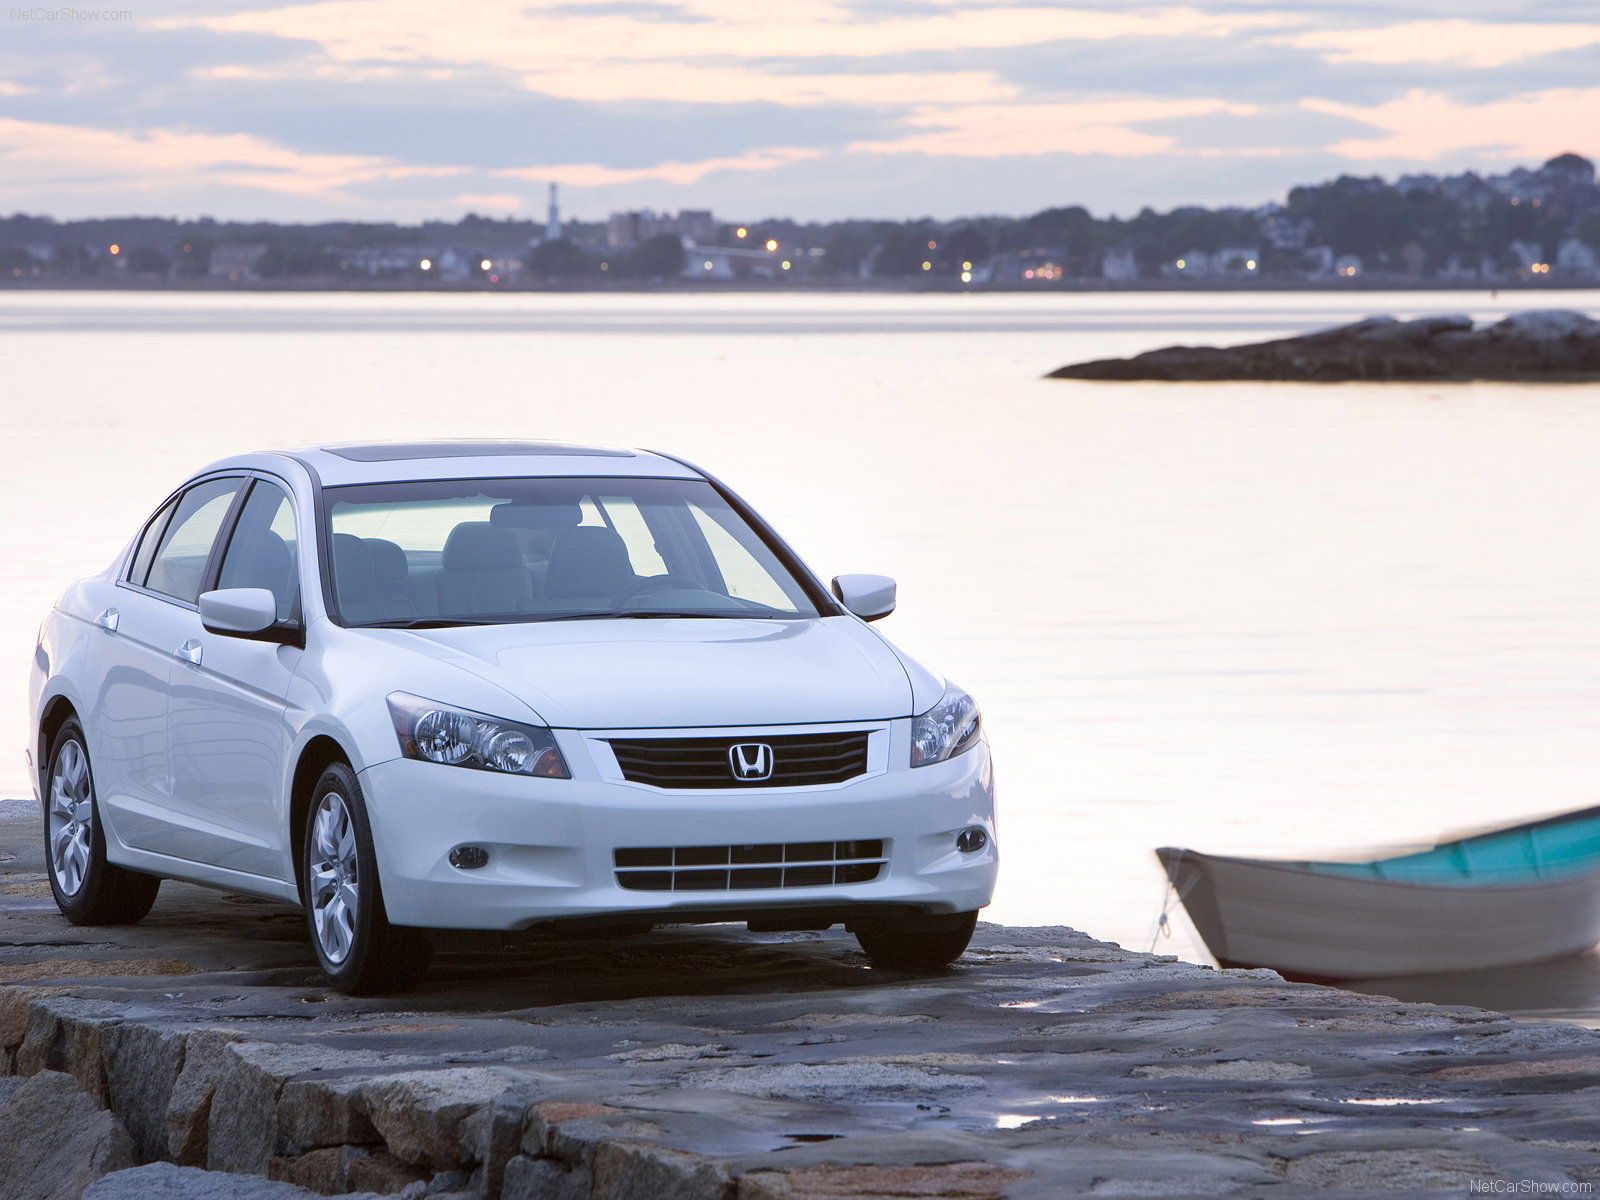 Honda Accord EX-L V6 Sedan photo 46418